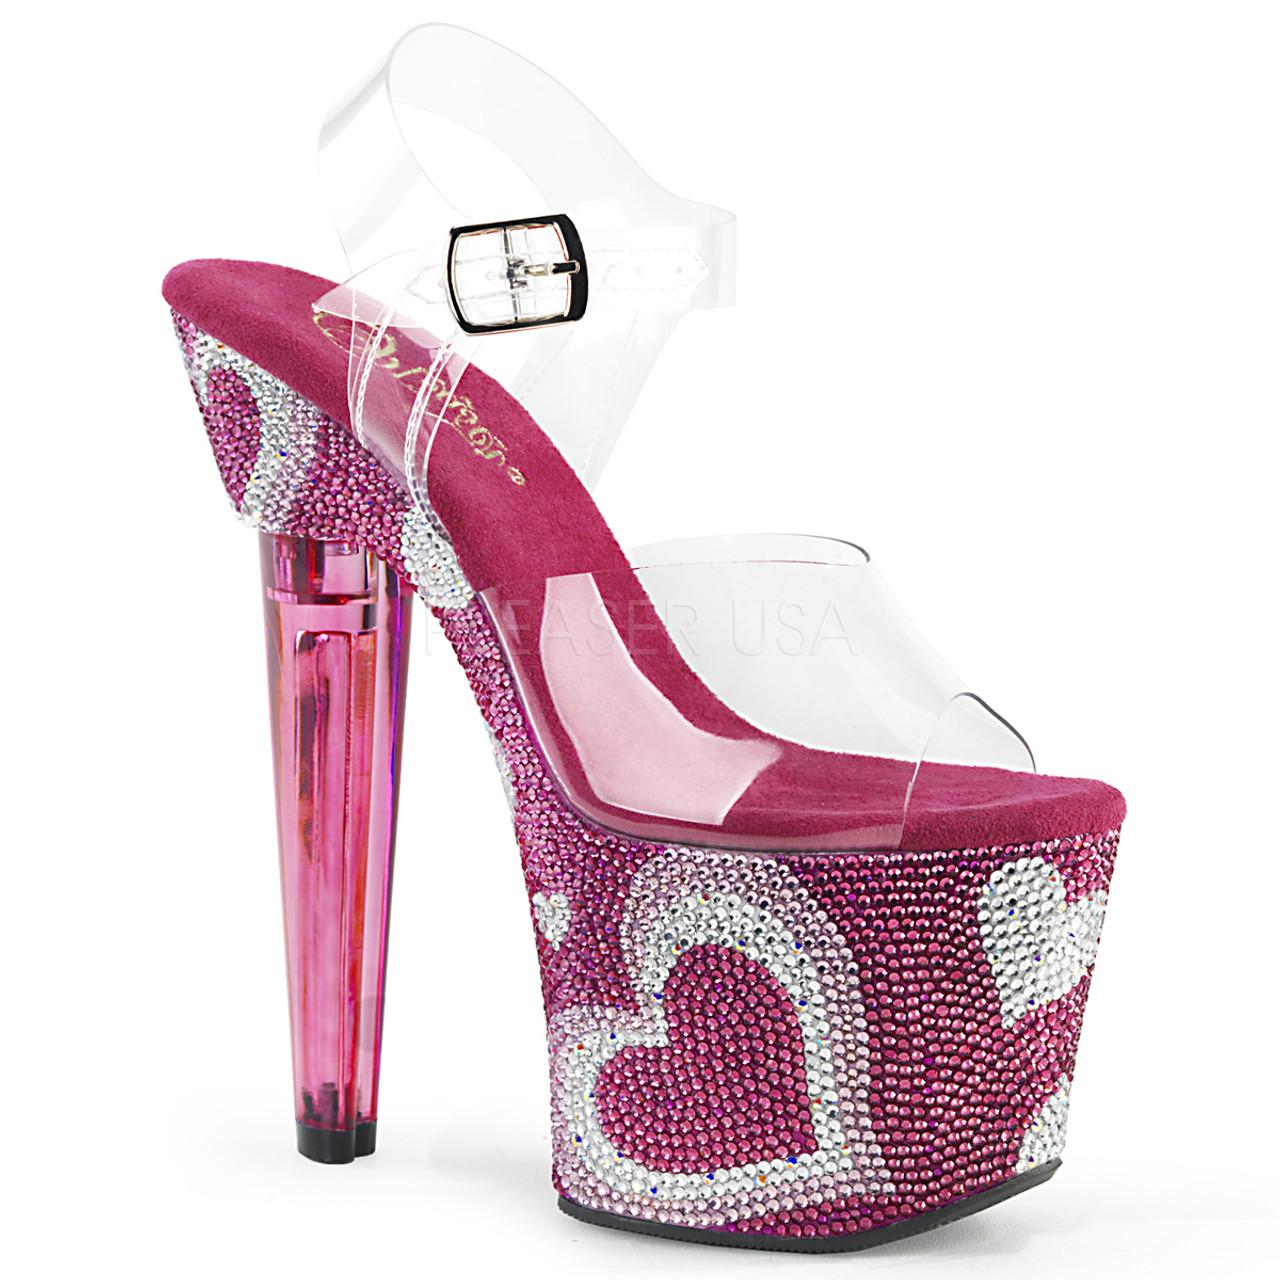 69eed9ef906 Stripper Shoes | LOVESICK-708HEART, Ankle Strap Platform with Heart  Rhinestones